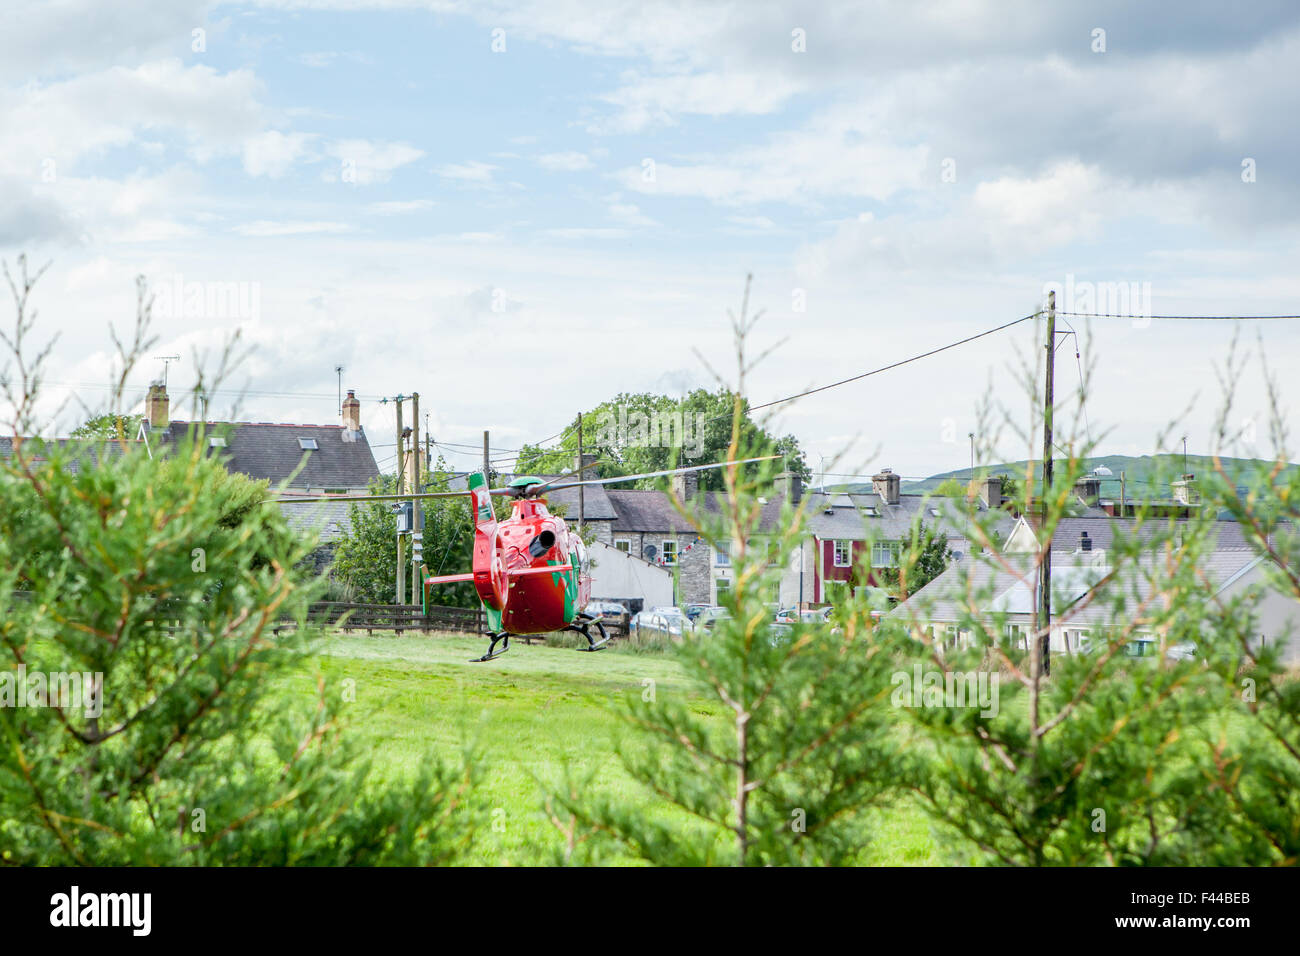 Wales air ambulance taking off after an emergency, flying within close proximity to power cables and houses - Stock Image